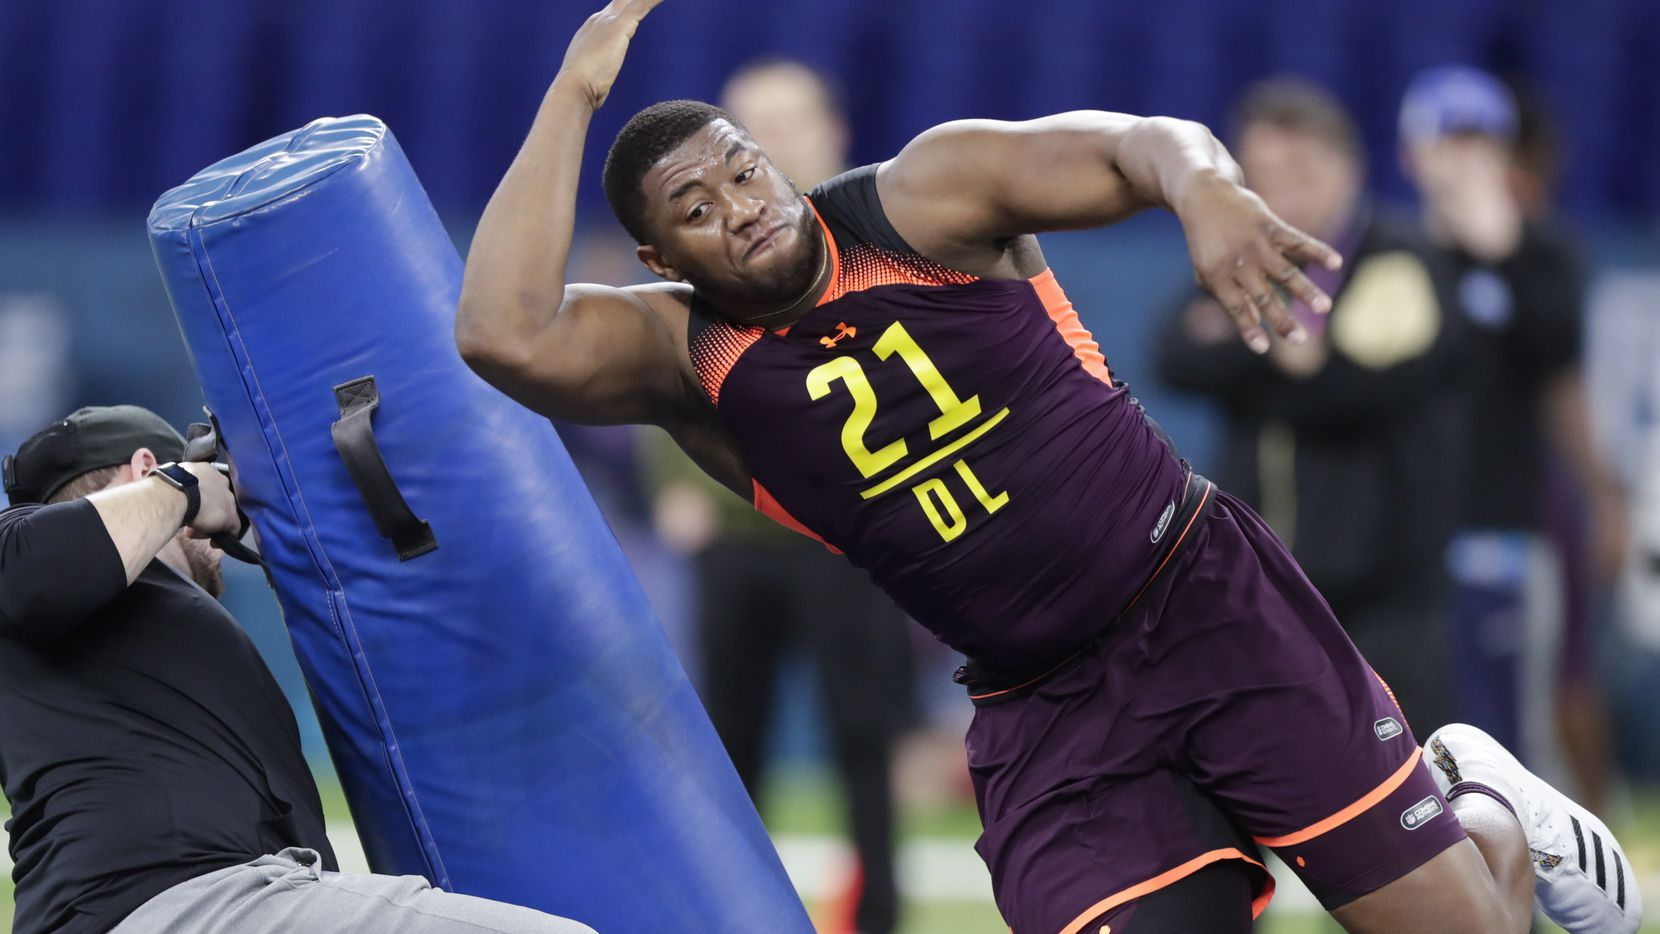 FILE - Kansas defensive lineman Daniel Wise runs a drill at the NFL football scouting combine in Indianapolis, Sunday, March 3, 2019. (AP Photo/Michael Conroy)